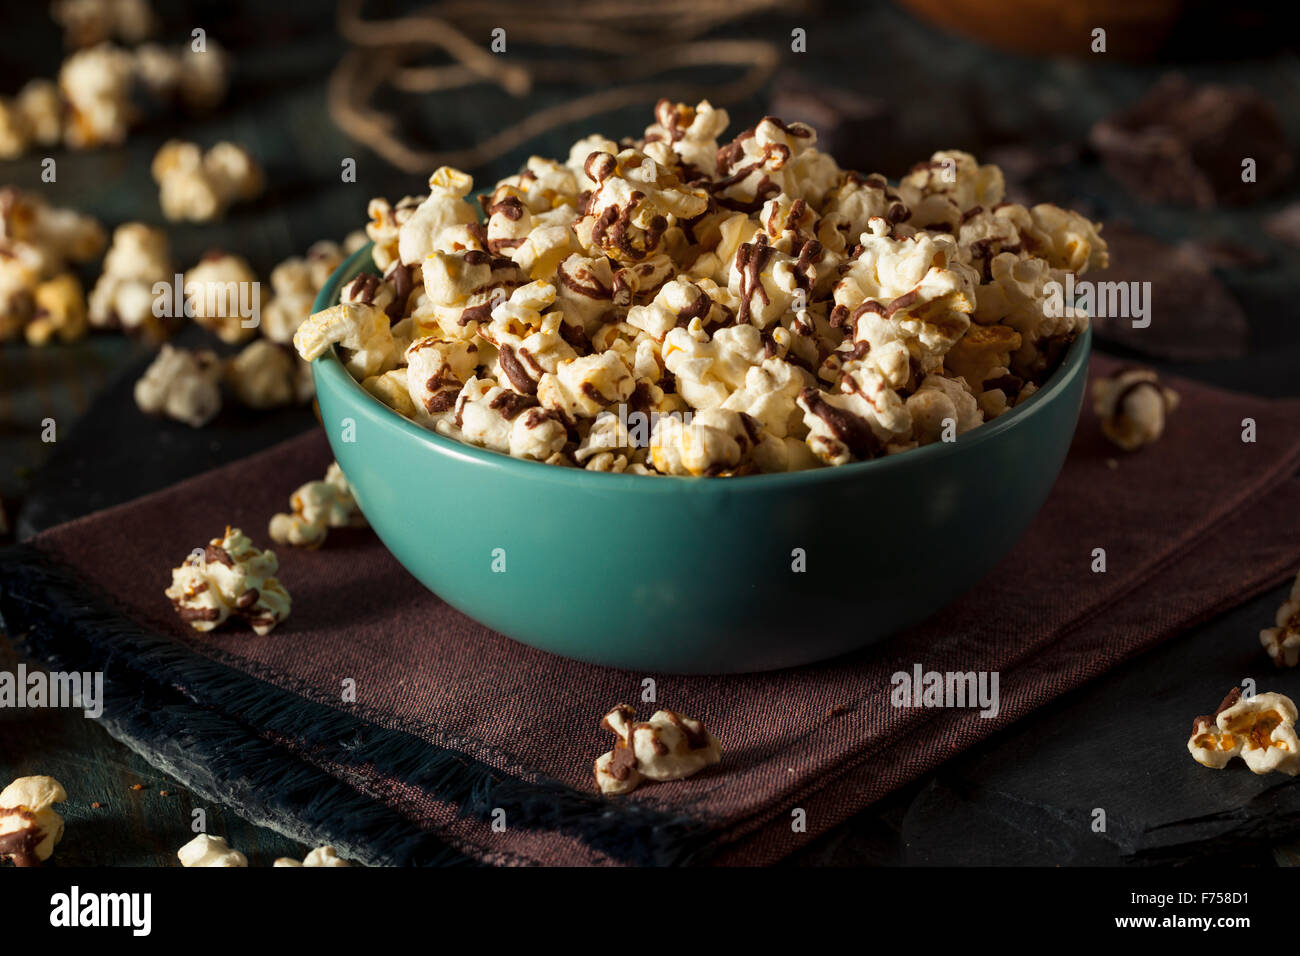 Homemade Chocolate Drizzled Caramel Popcorn Ready to Eat - Stock Image